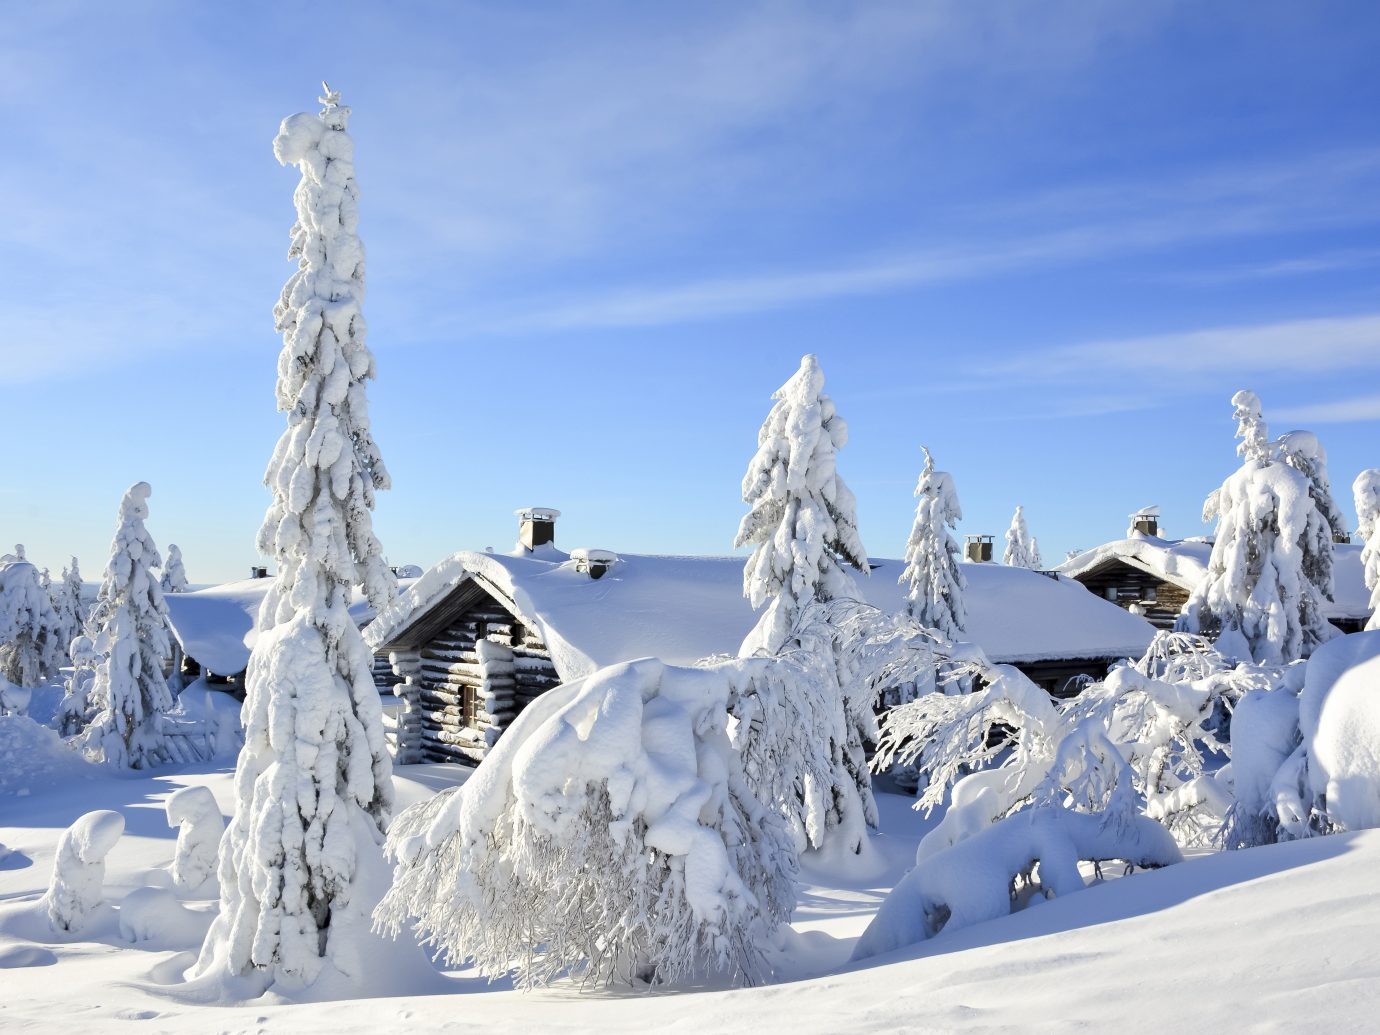 Cottages on snowy mountain on a sunny cold winter day on tourist resort in Lapland Finland.